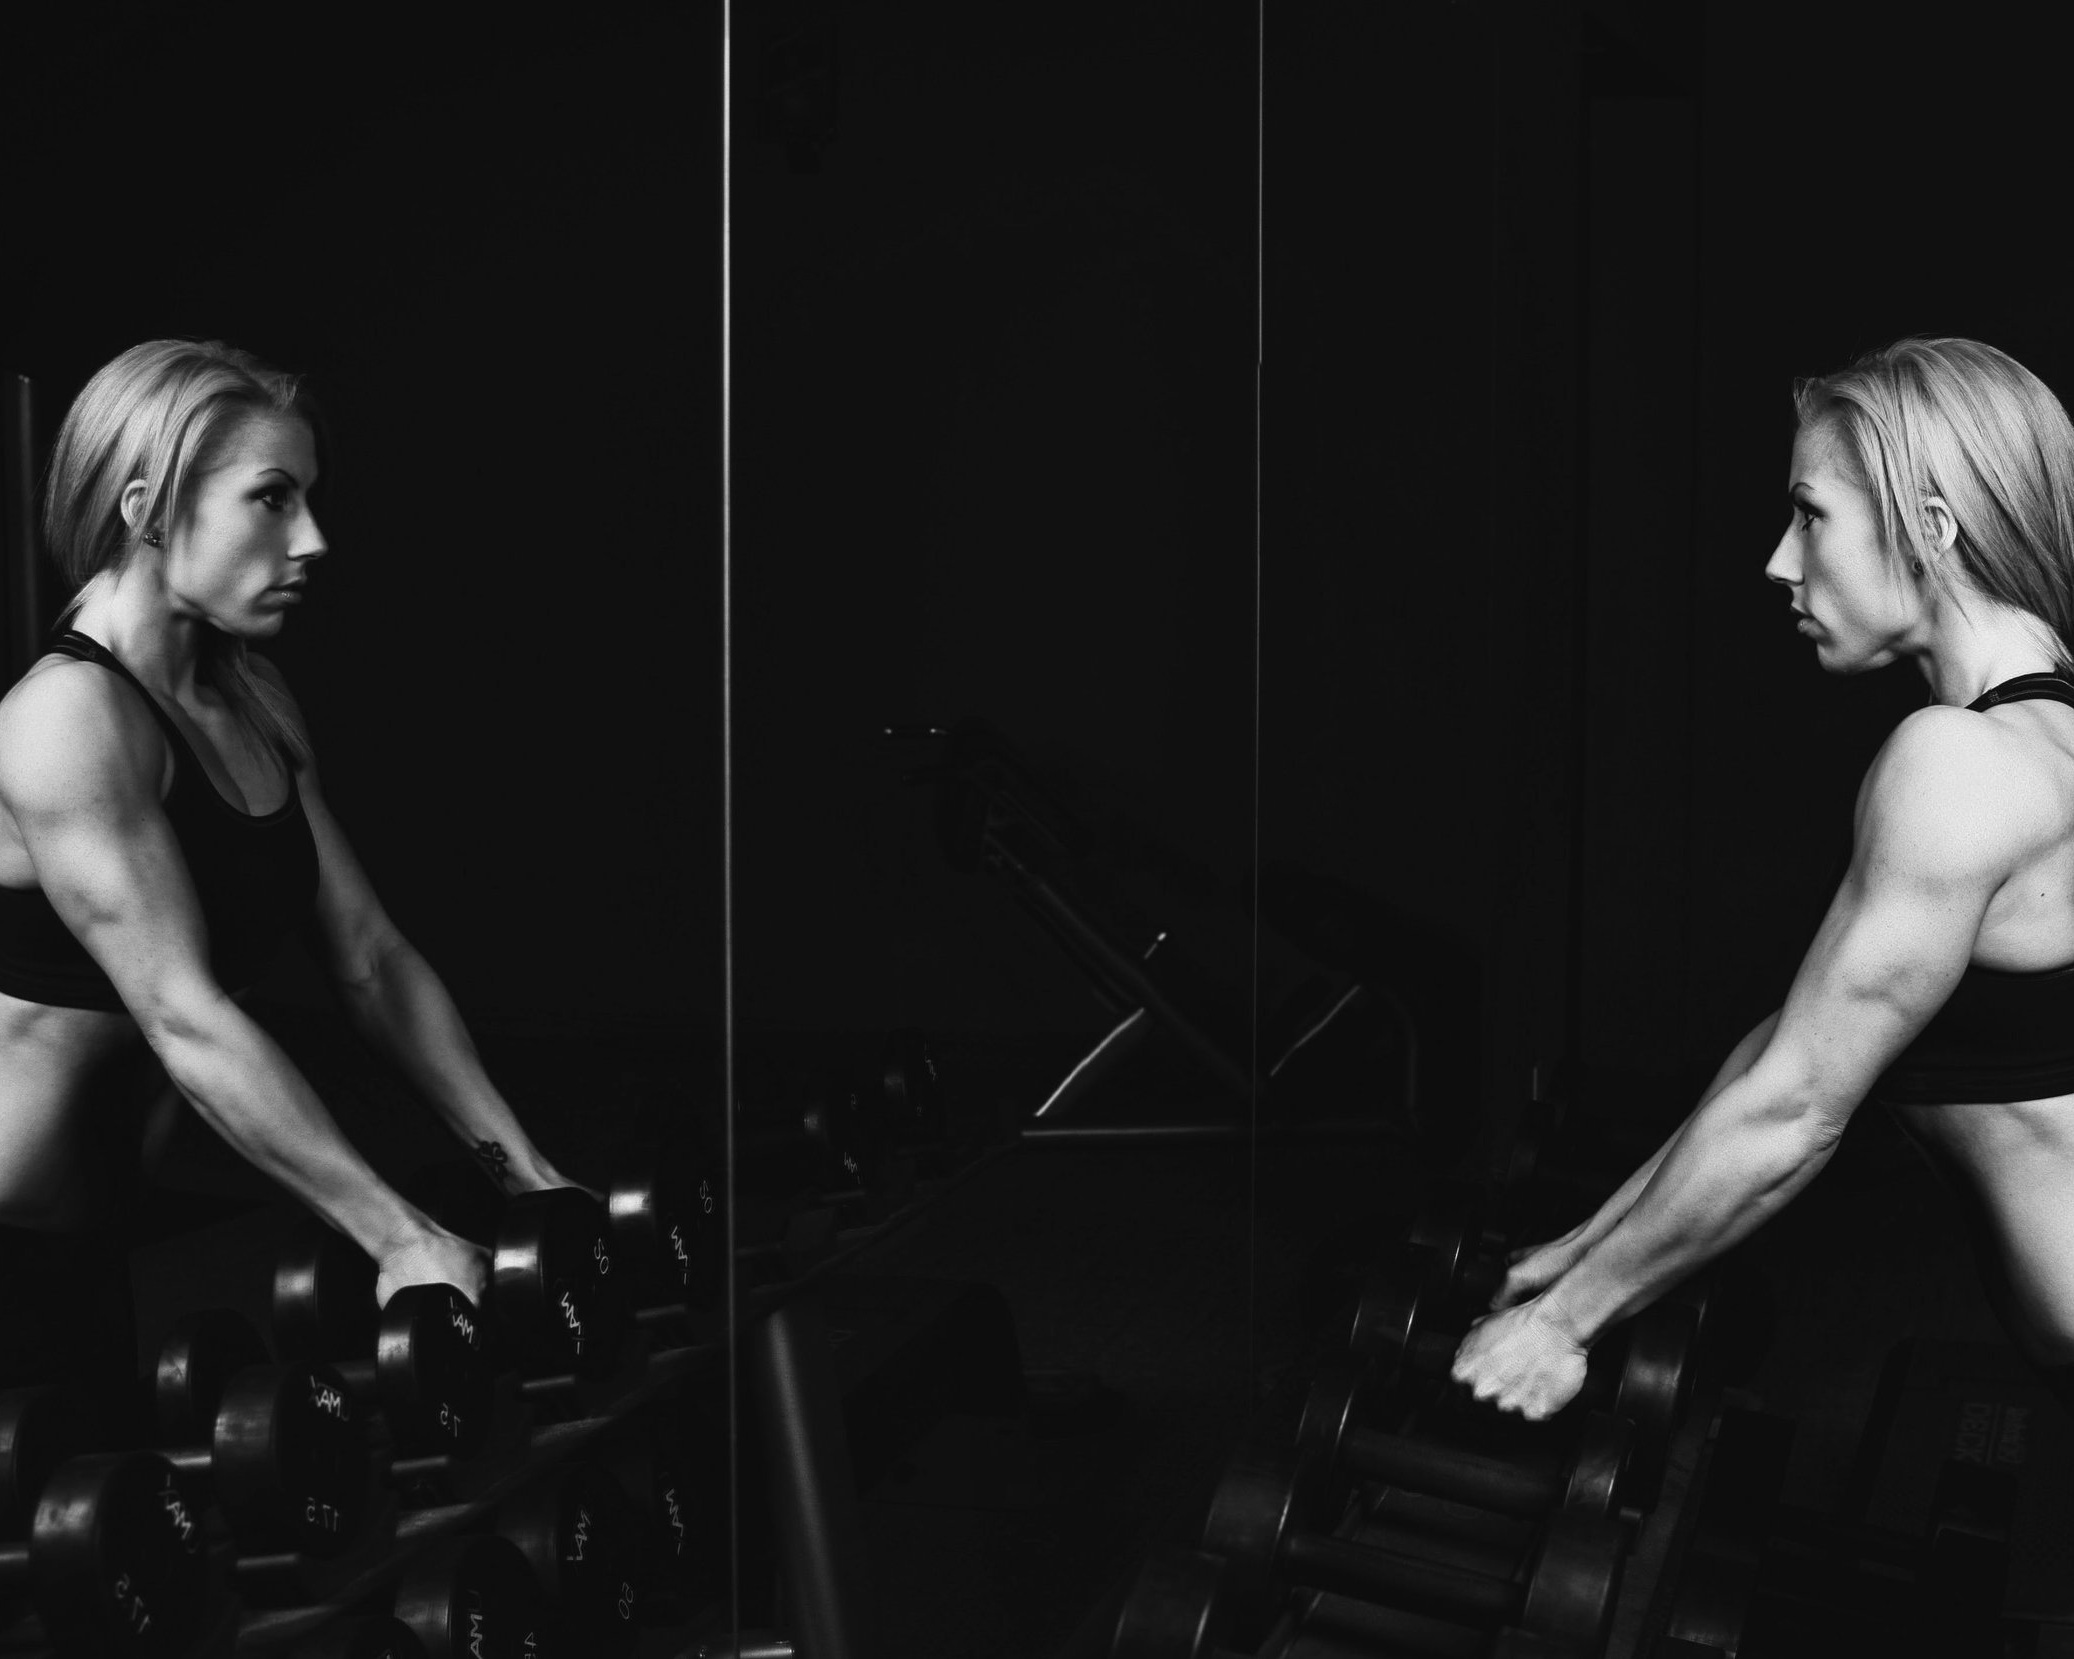 Yes, You Can Get Addicted to Exercise - Exercise addiction is a legitimate problem whose prevalence is thought to be highest among triathletes, runners, and individuals who suffer from eating disorders.